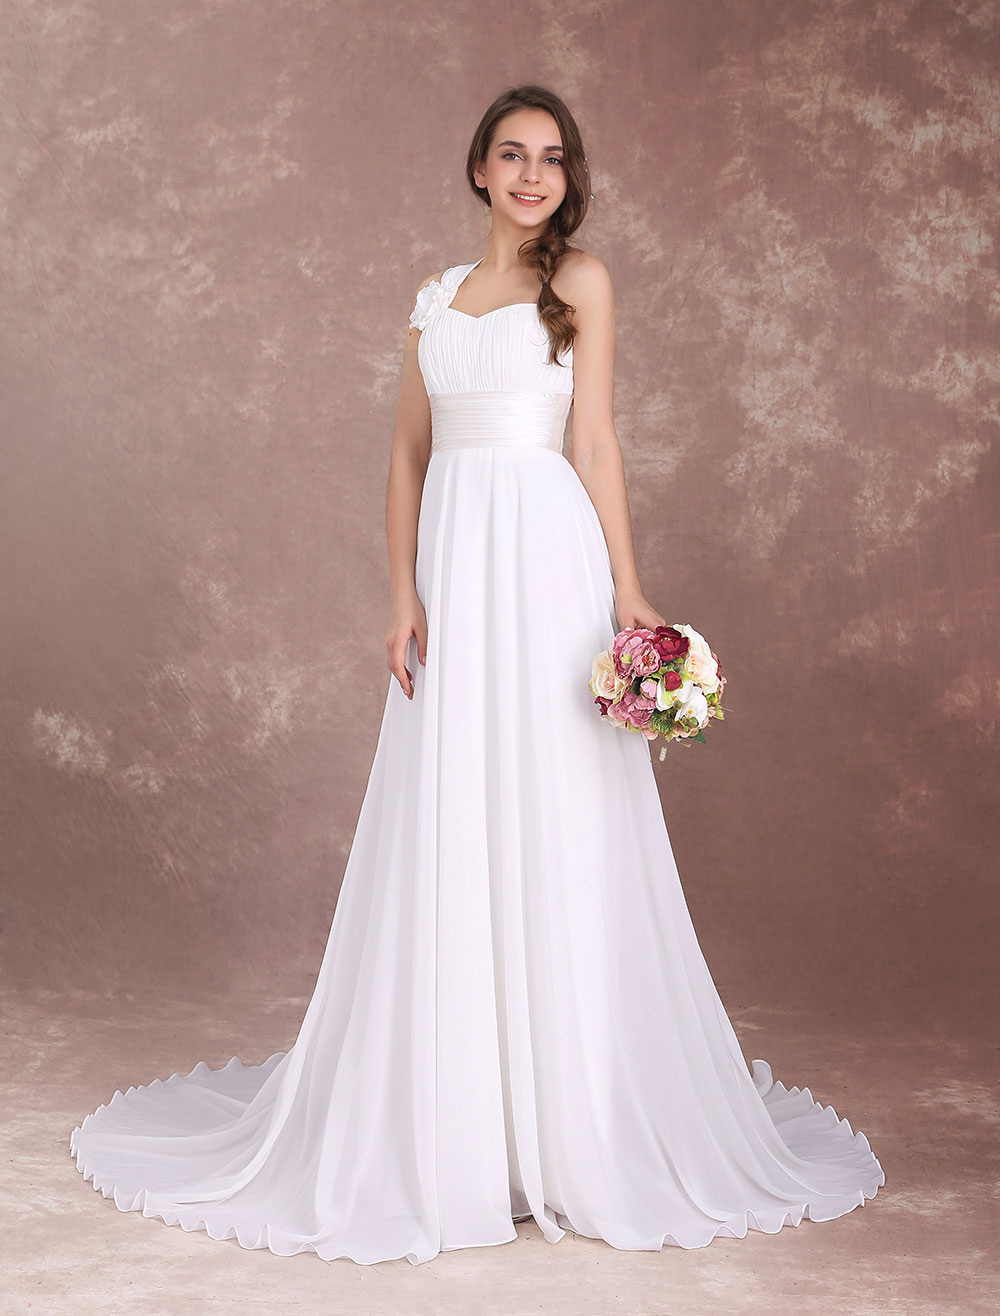 official supplier clearance prices wholesale dealer Beach Wedding Dresses One Shoulder Boho Bridal Gown Pleated Chiffon Ivory  Flowers Summer Wedding Gown With Train